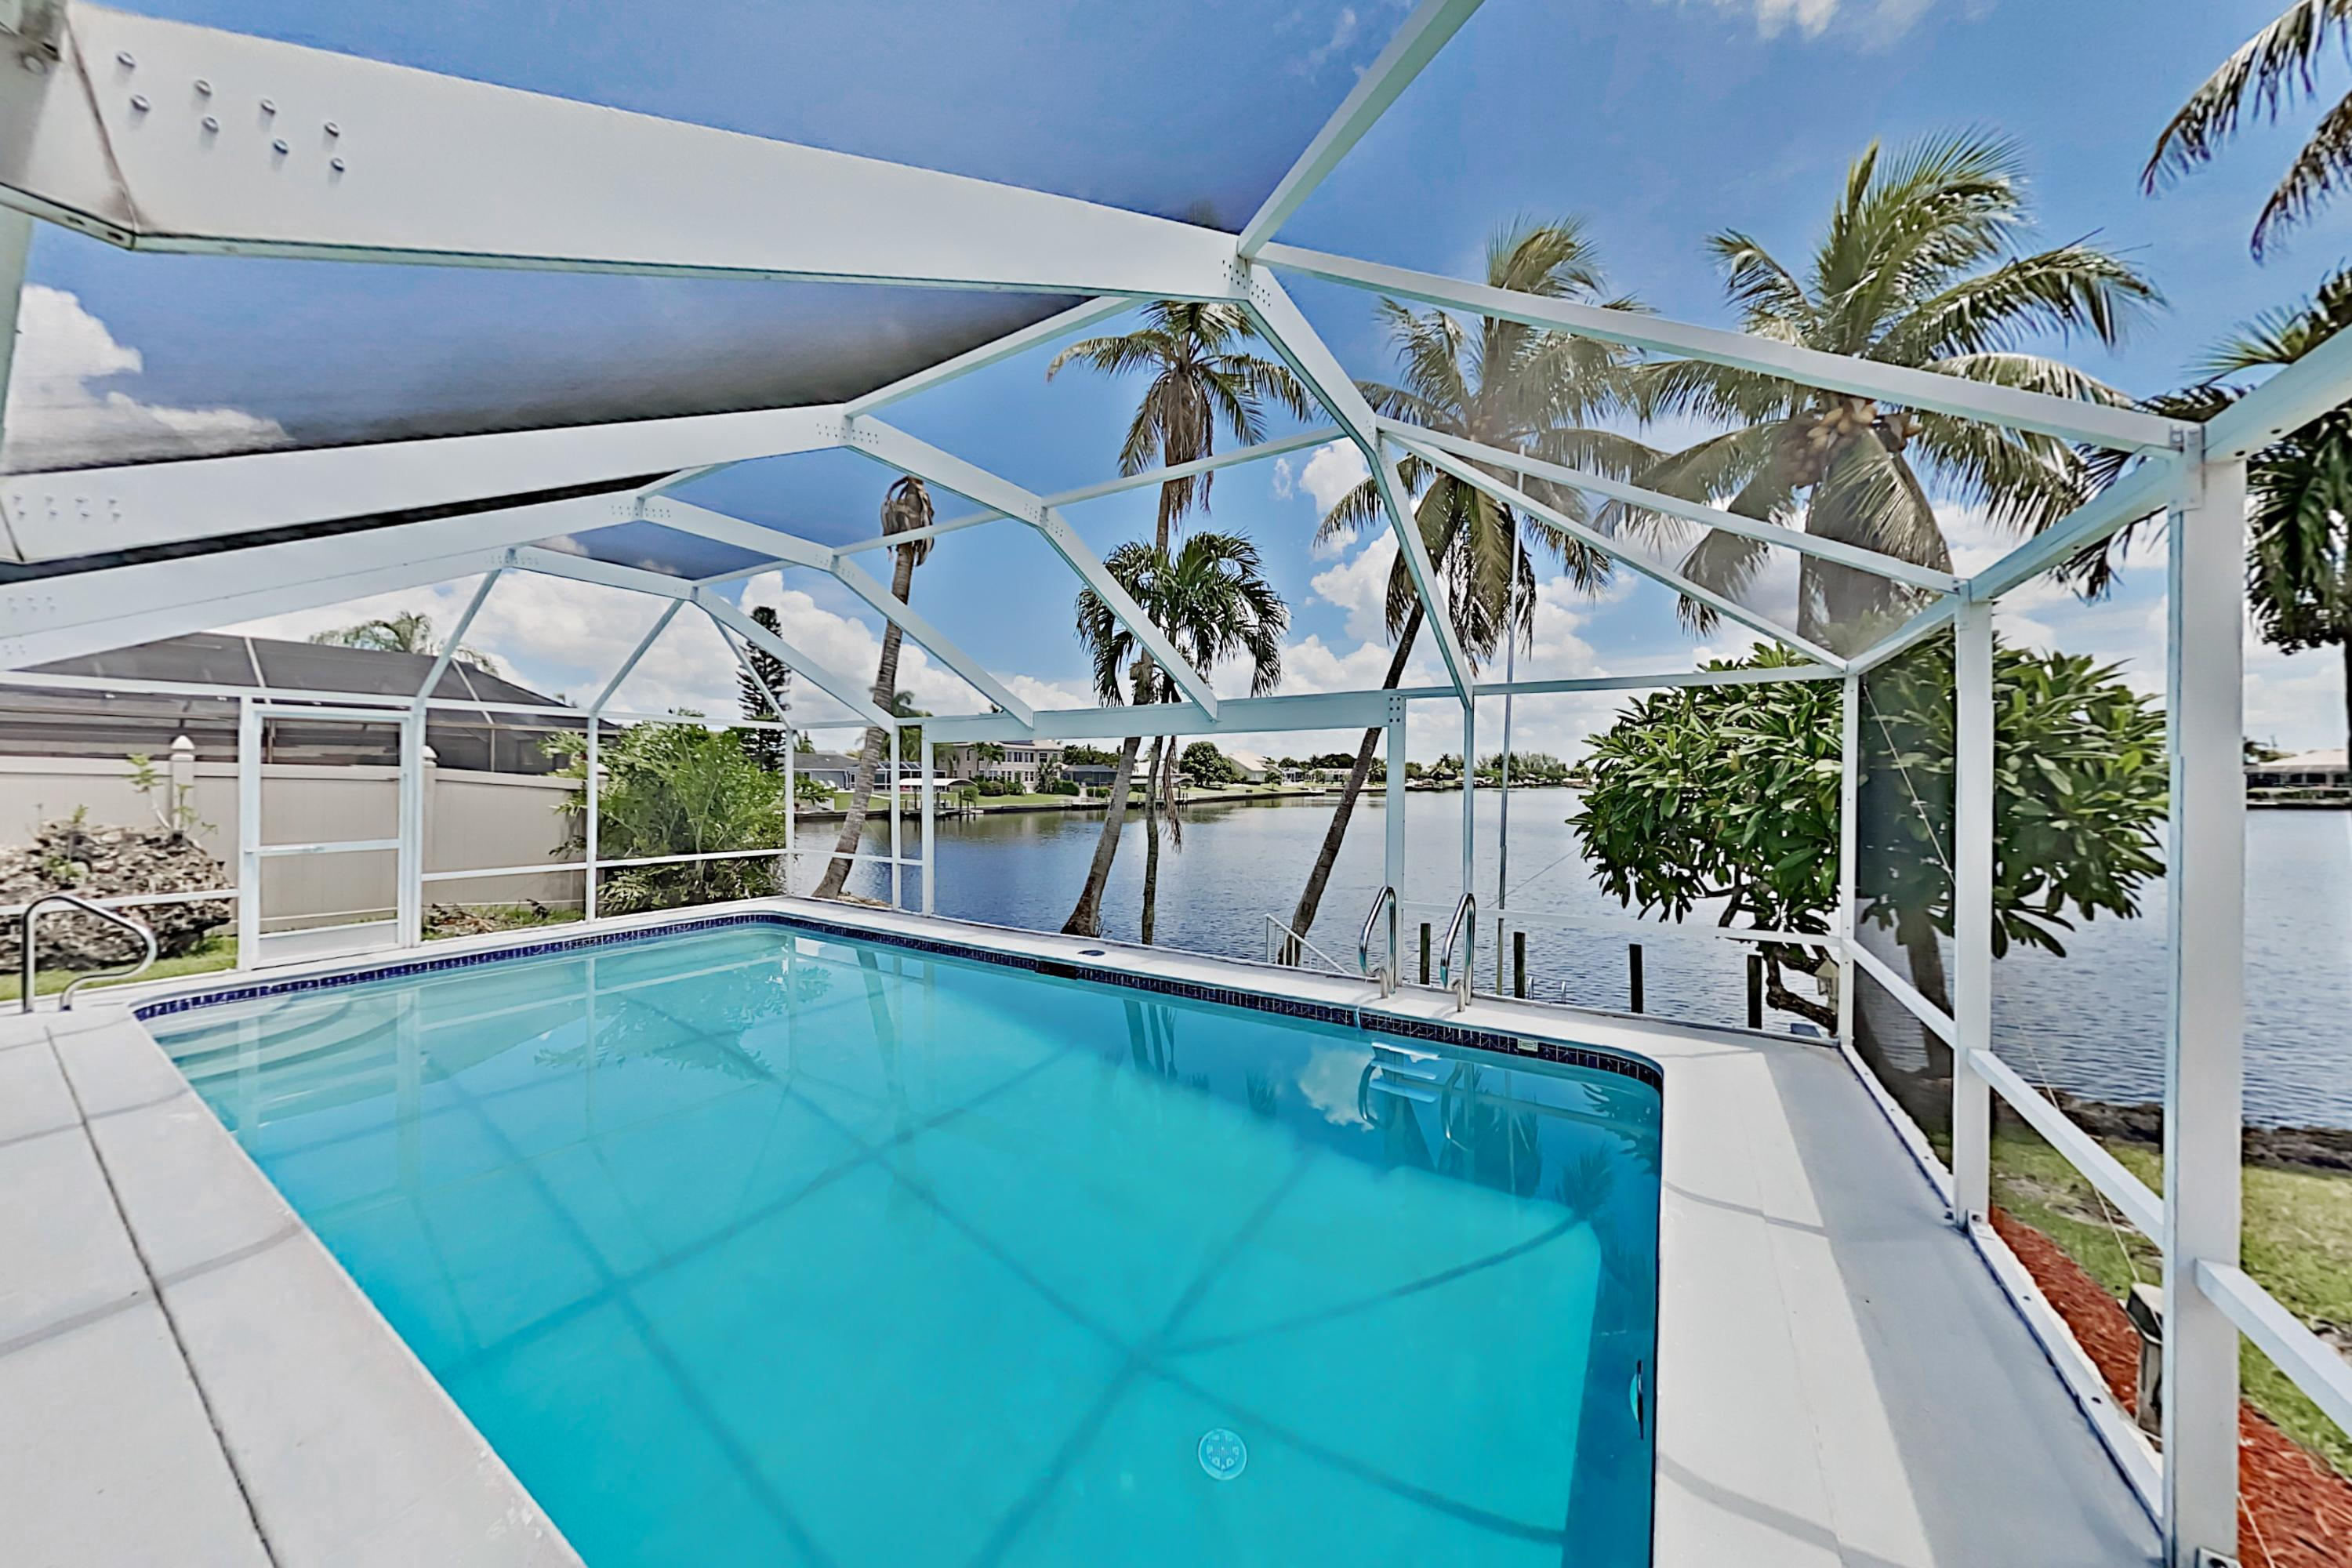 Property Image 1 - Luxe Waterfront Home with Screened Pool & Private Dock